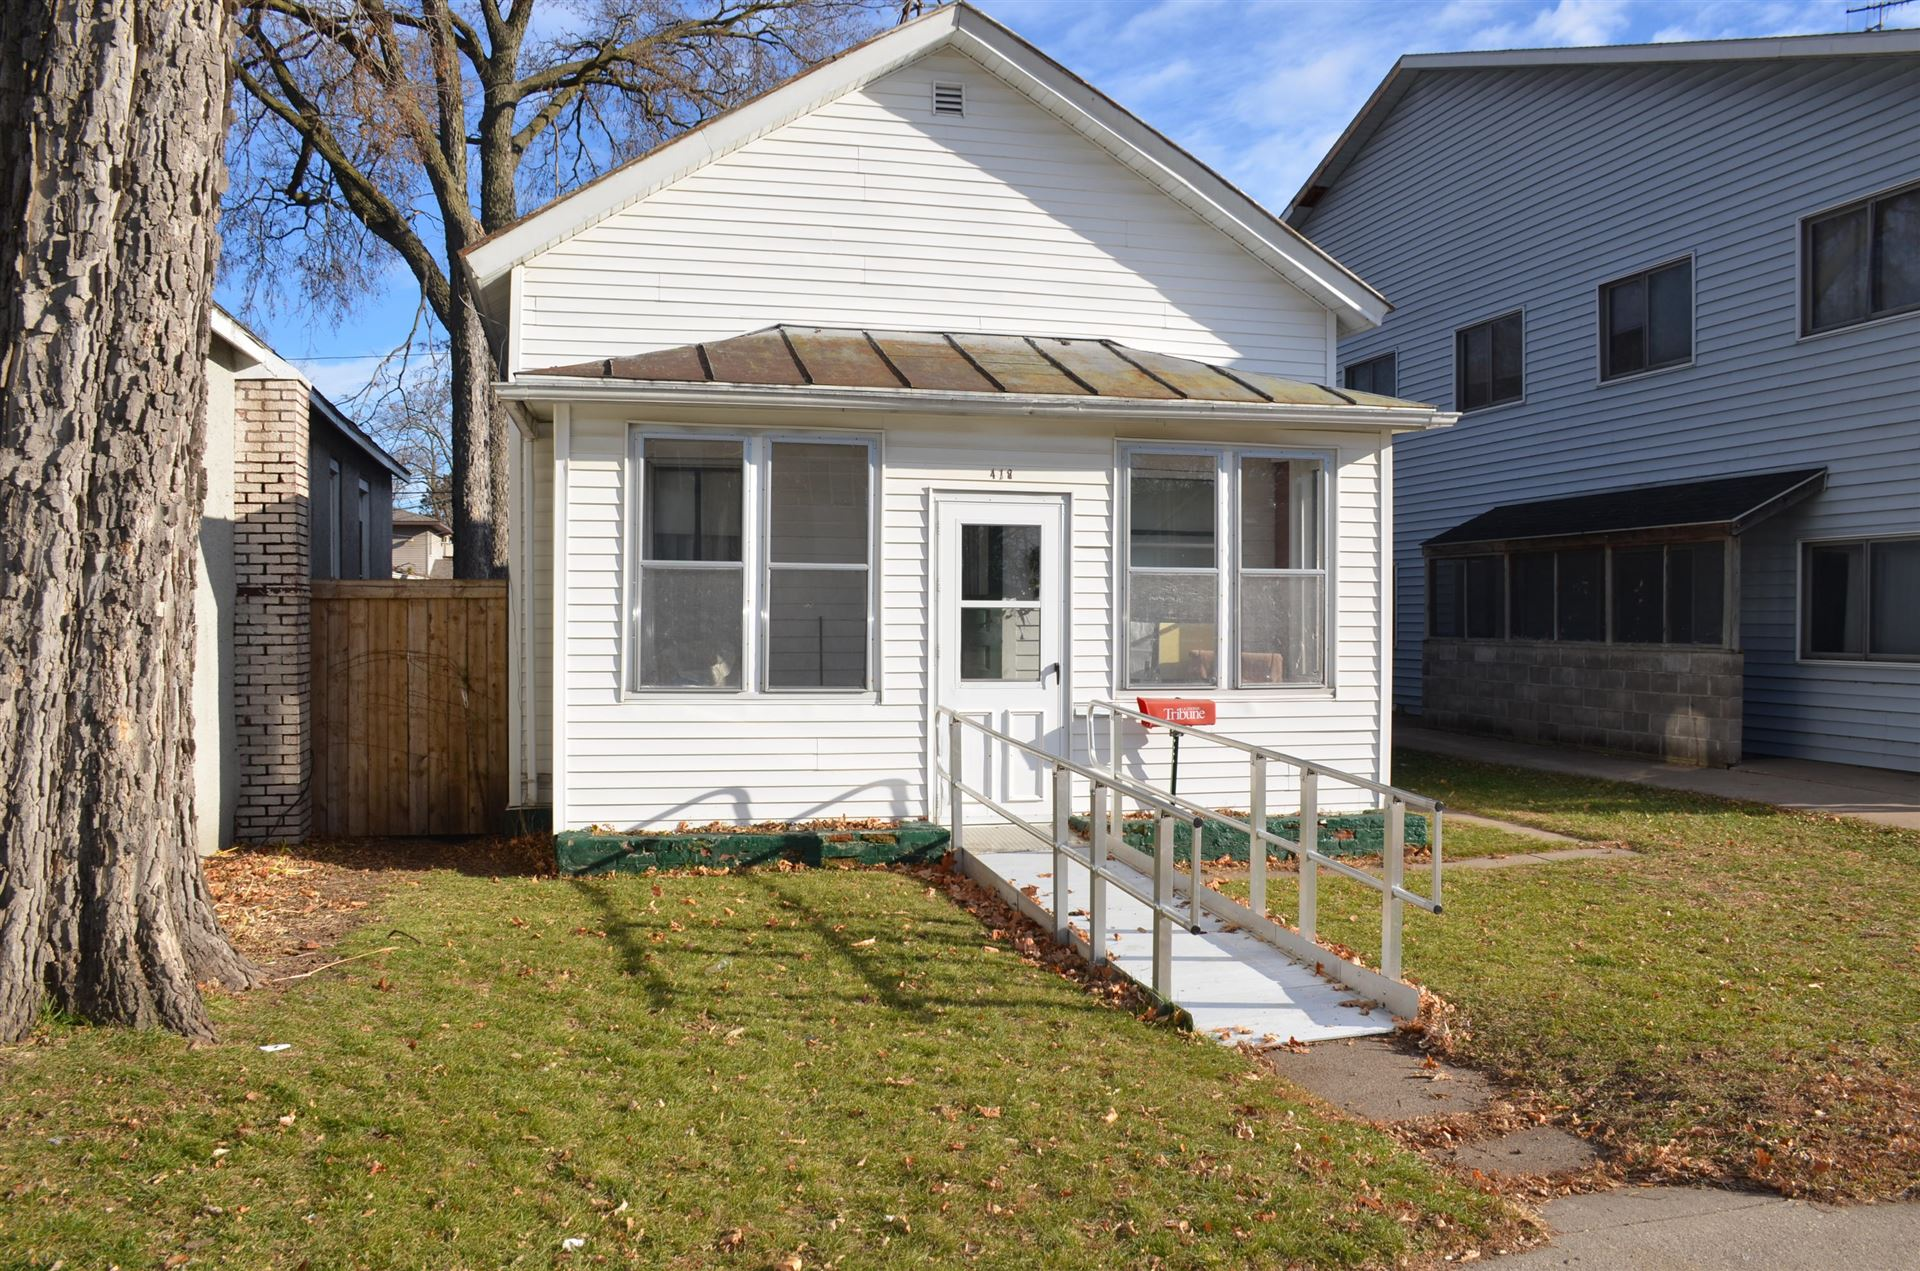 418 10th St N, La Crosse, WI 54601 - MLS#: 1720468